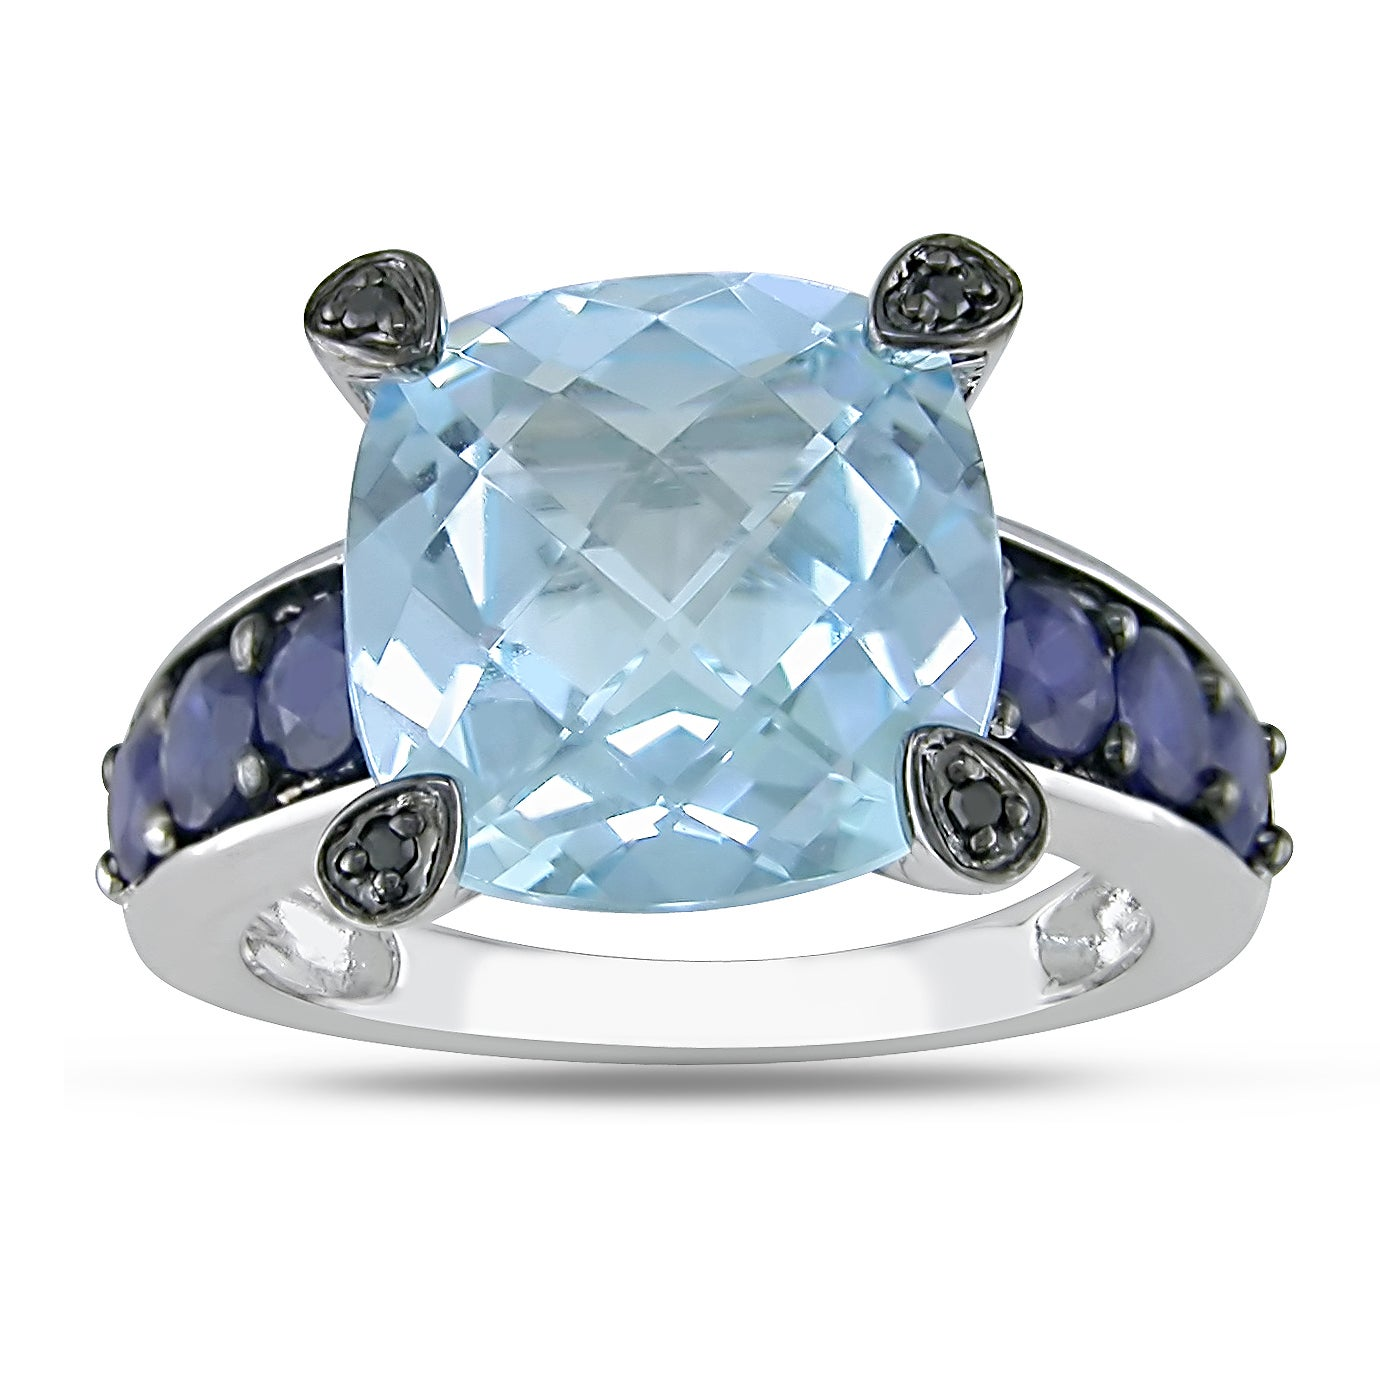 Miadora 10k White Gold Multi-gemstone and Black Diamond Ring